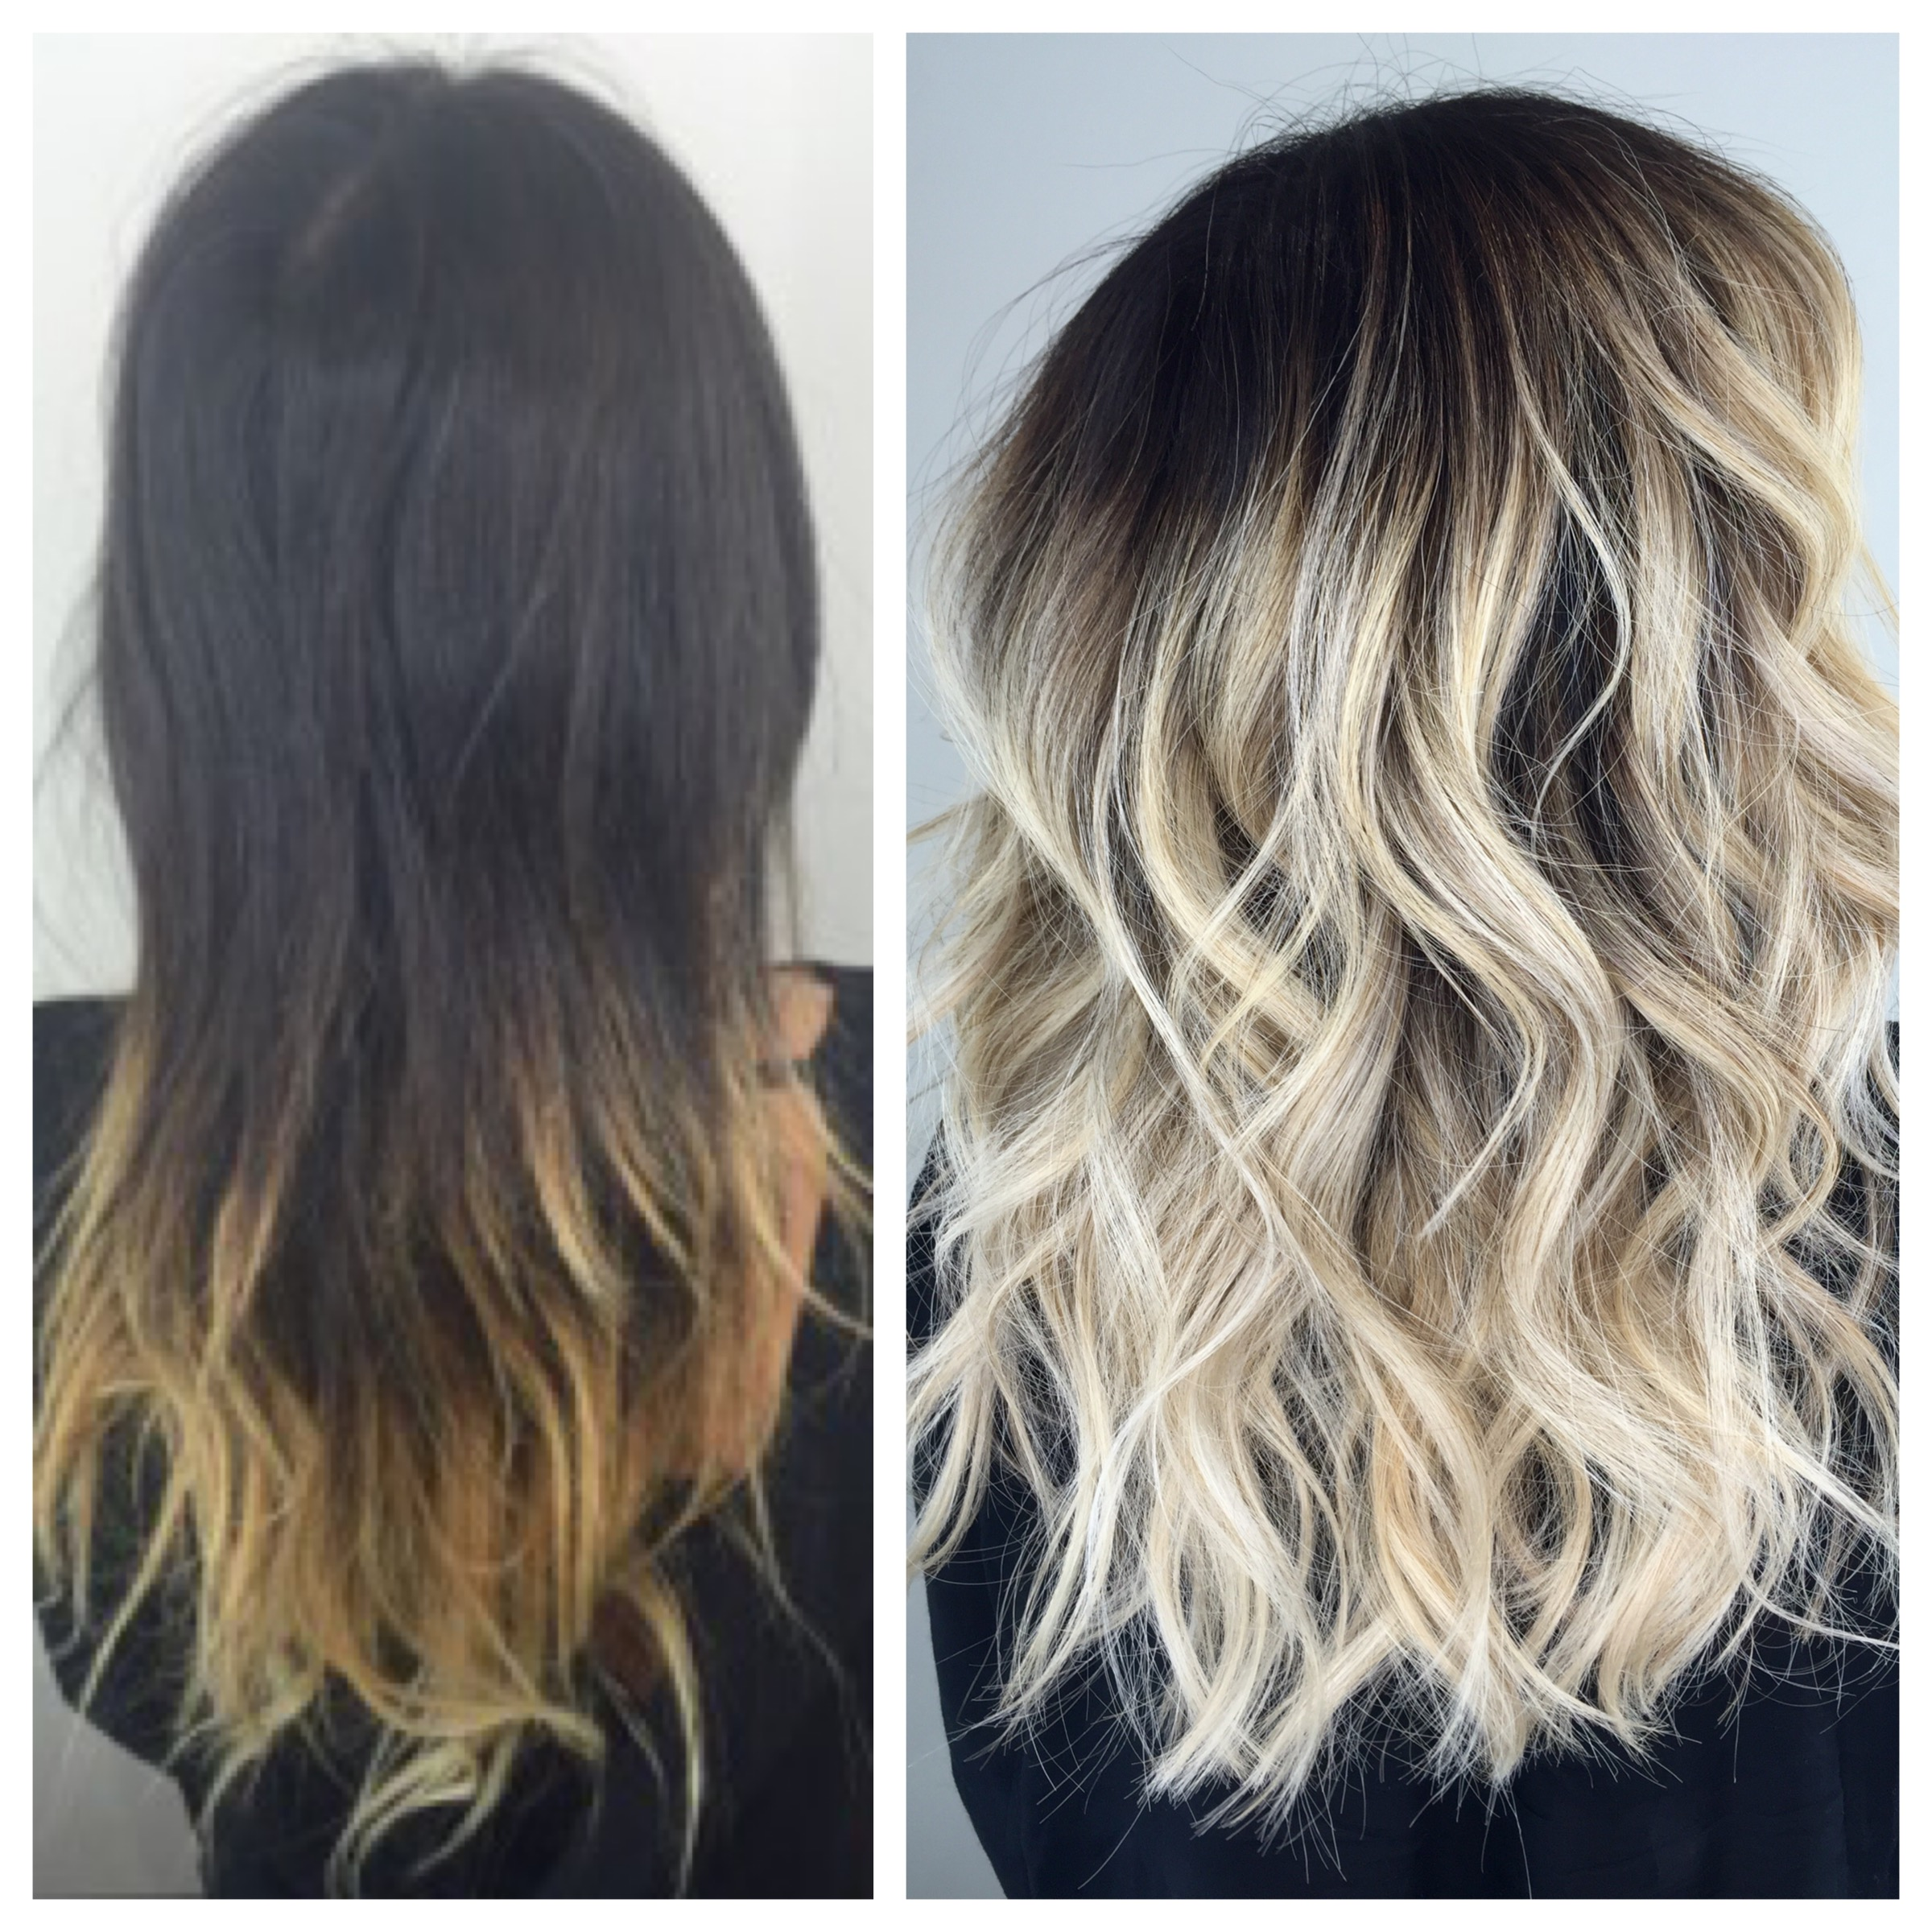 Khloe Kardashian inspired haircolor makeover by Dennis Cooper.